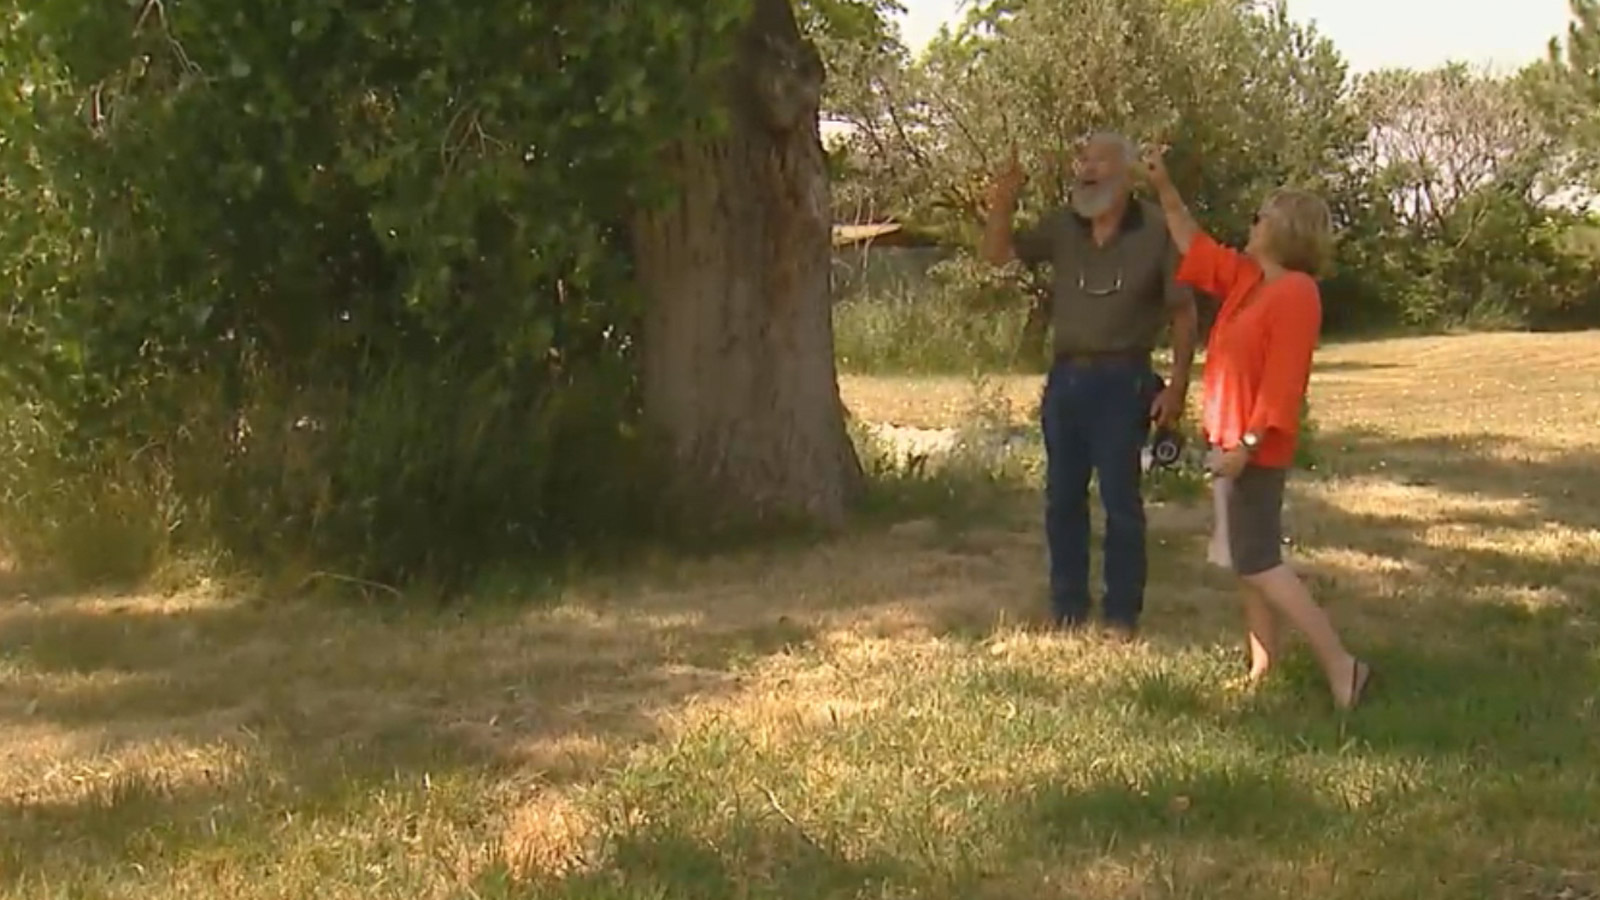 George Ray shows CBS4's Suzanne McCarroll where the drone was flying before it crashed (credit: CBS)